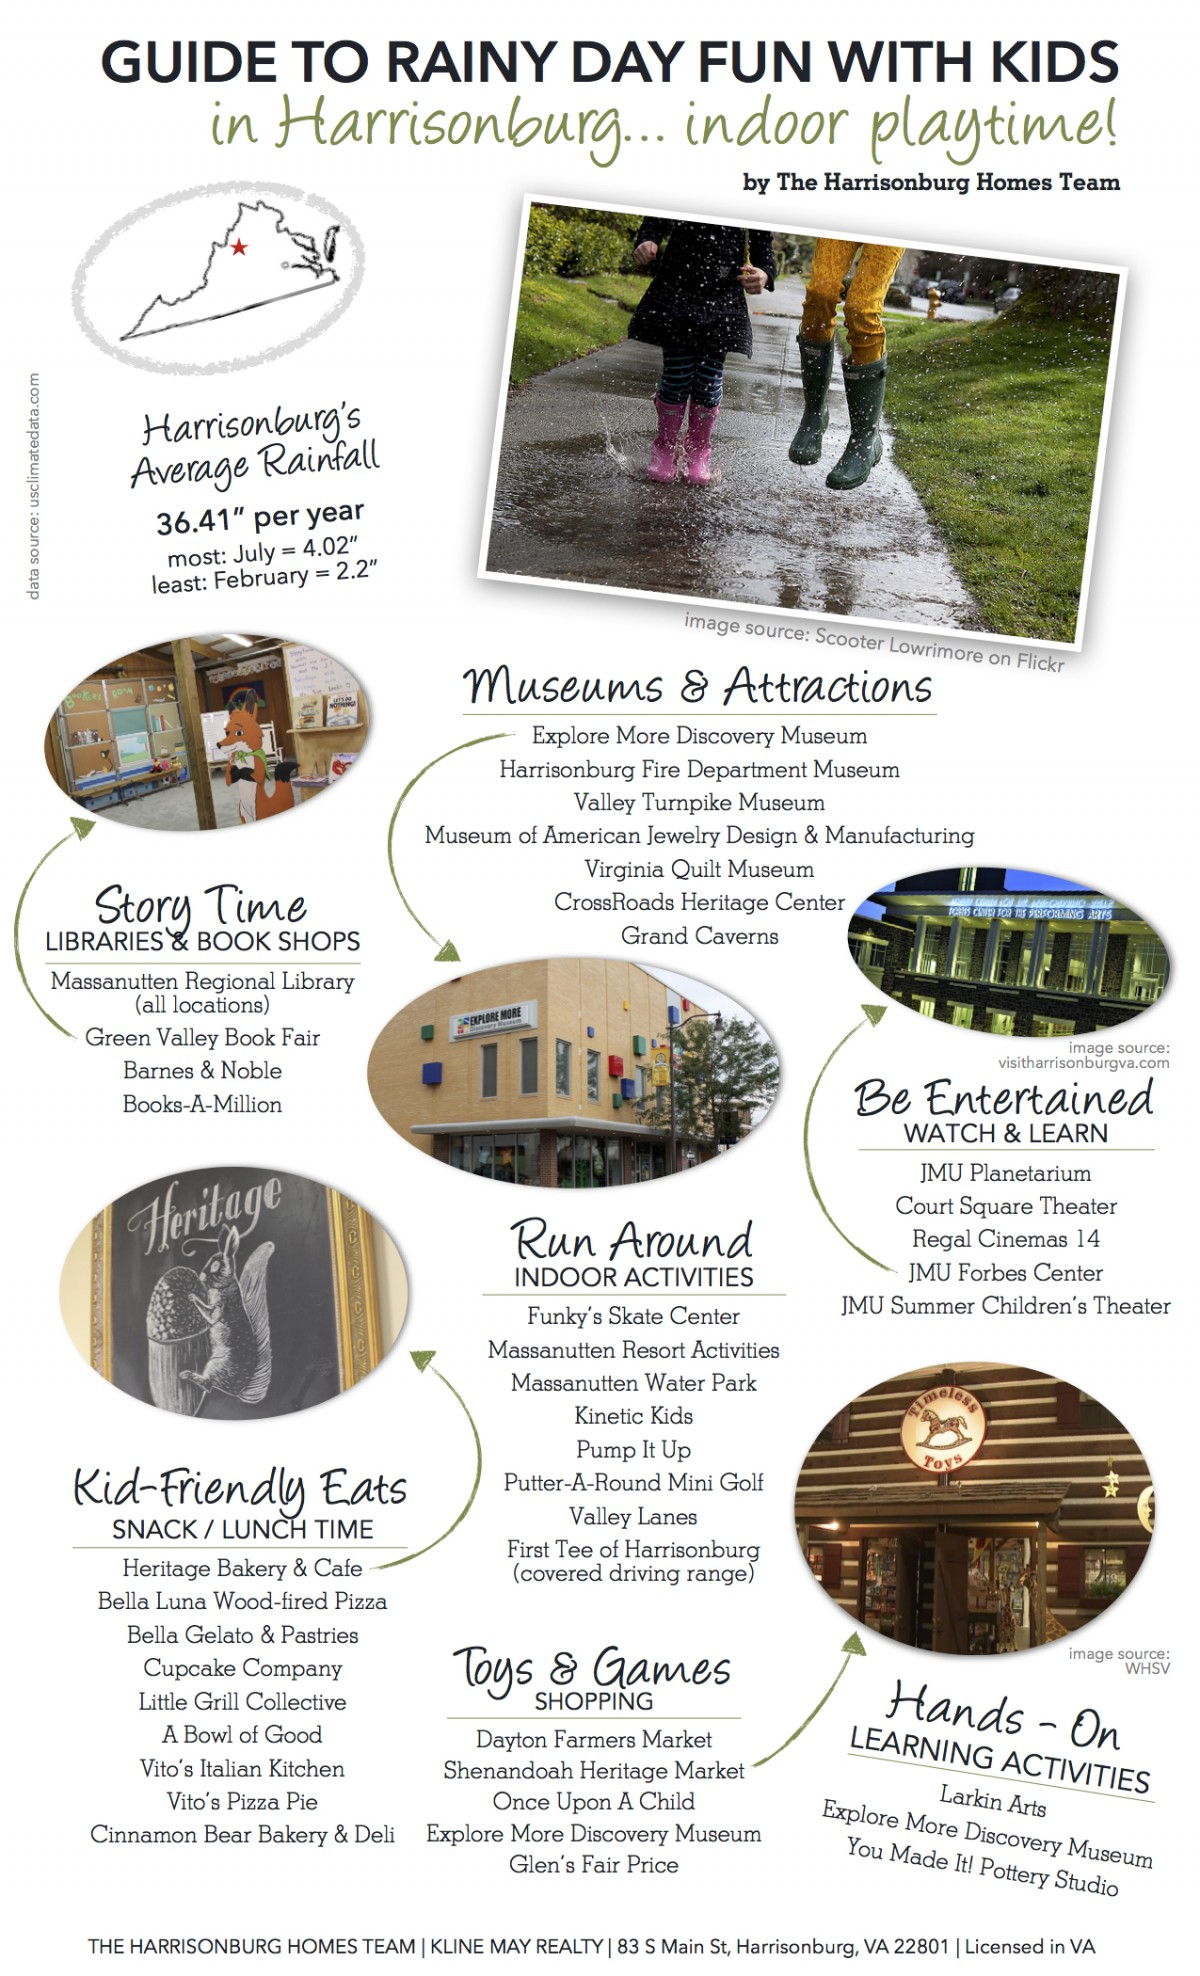 Guide to Rainy Day Fun with Kids in Harrisonburg